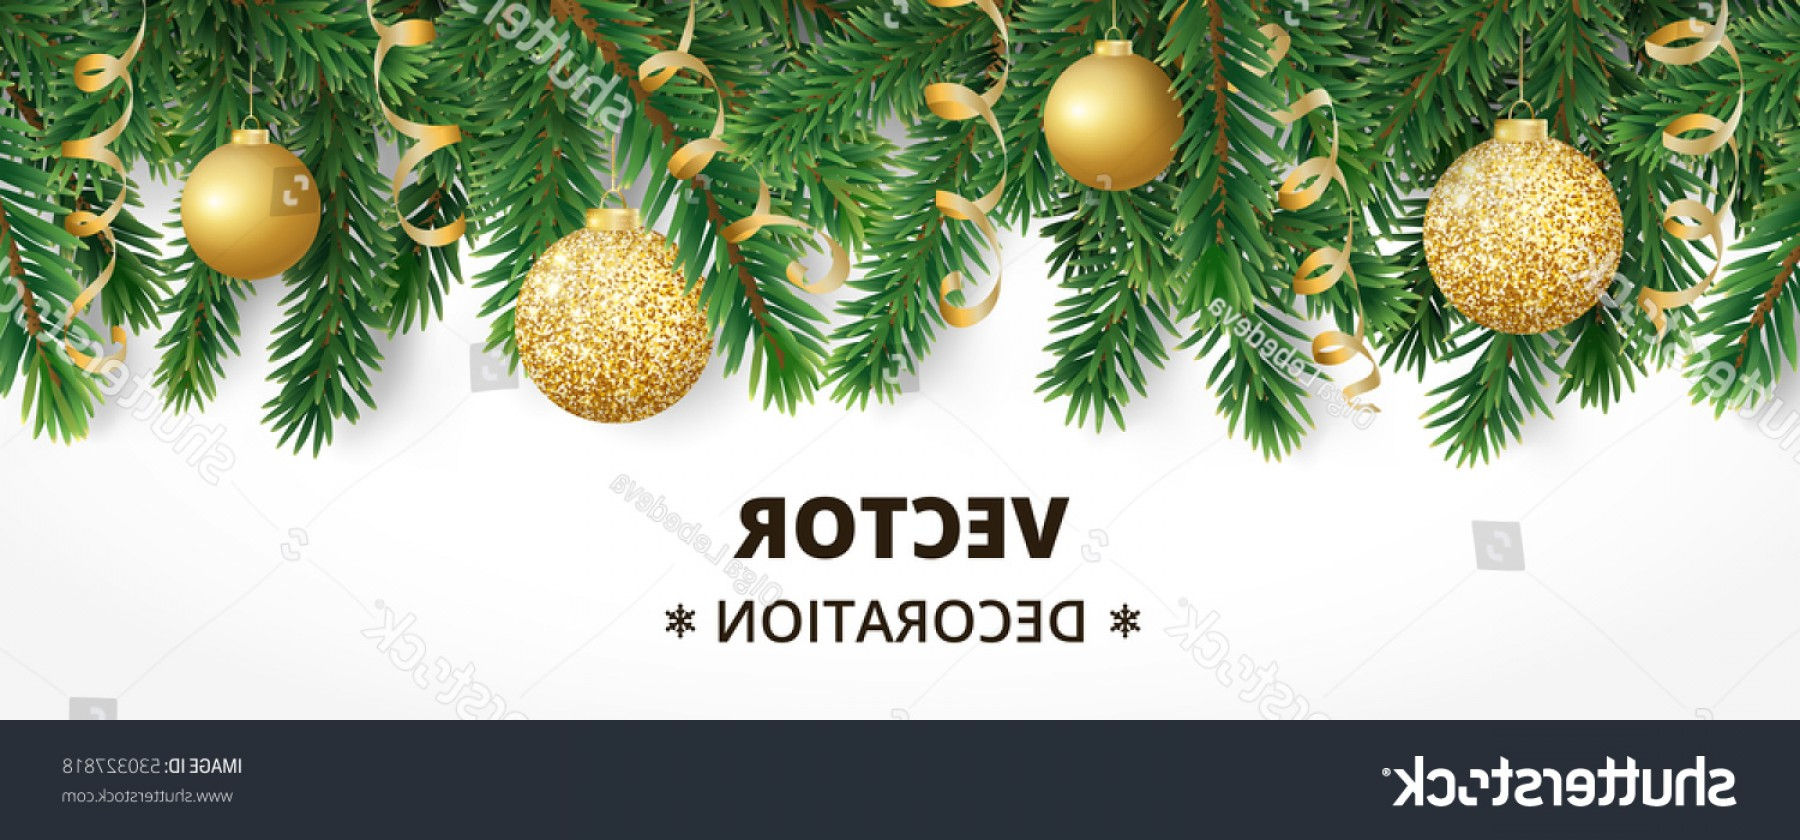 Christmas Horizontal Vector: Horizontal Banner Christmas Tree Garland Ornaments